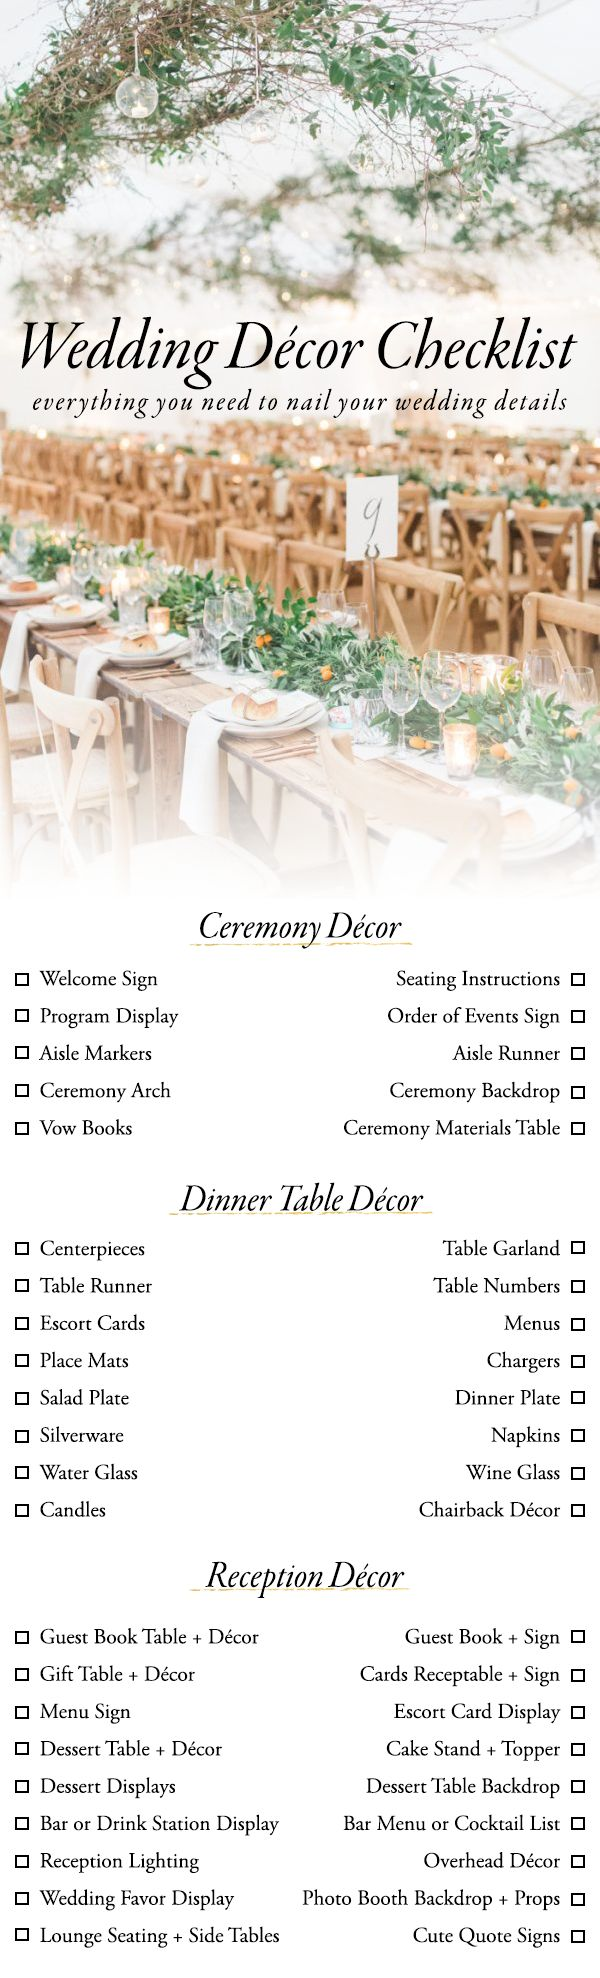 Designing your wedding can be a little overwhelming, but our wedding décor checklist is here to help! Here's everything you need to nail the details.